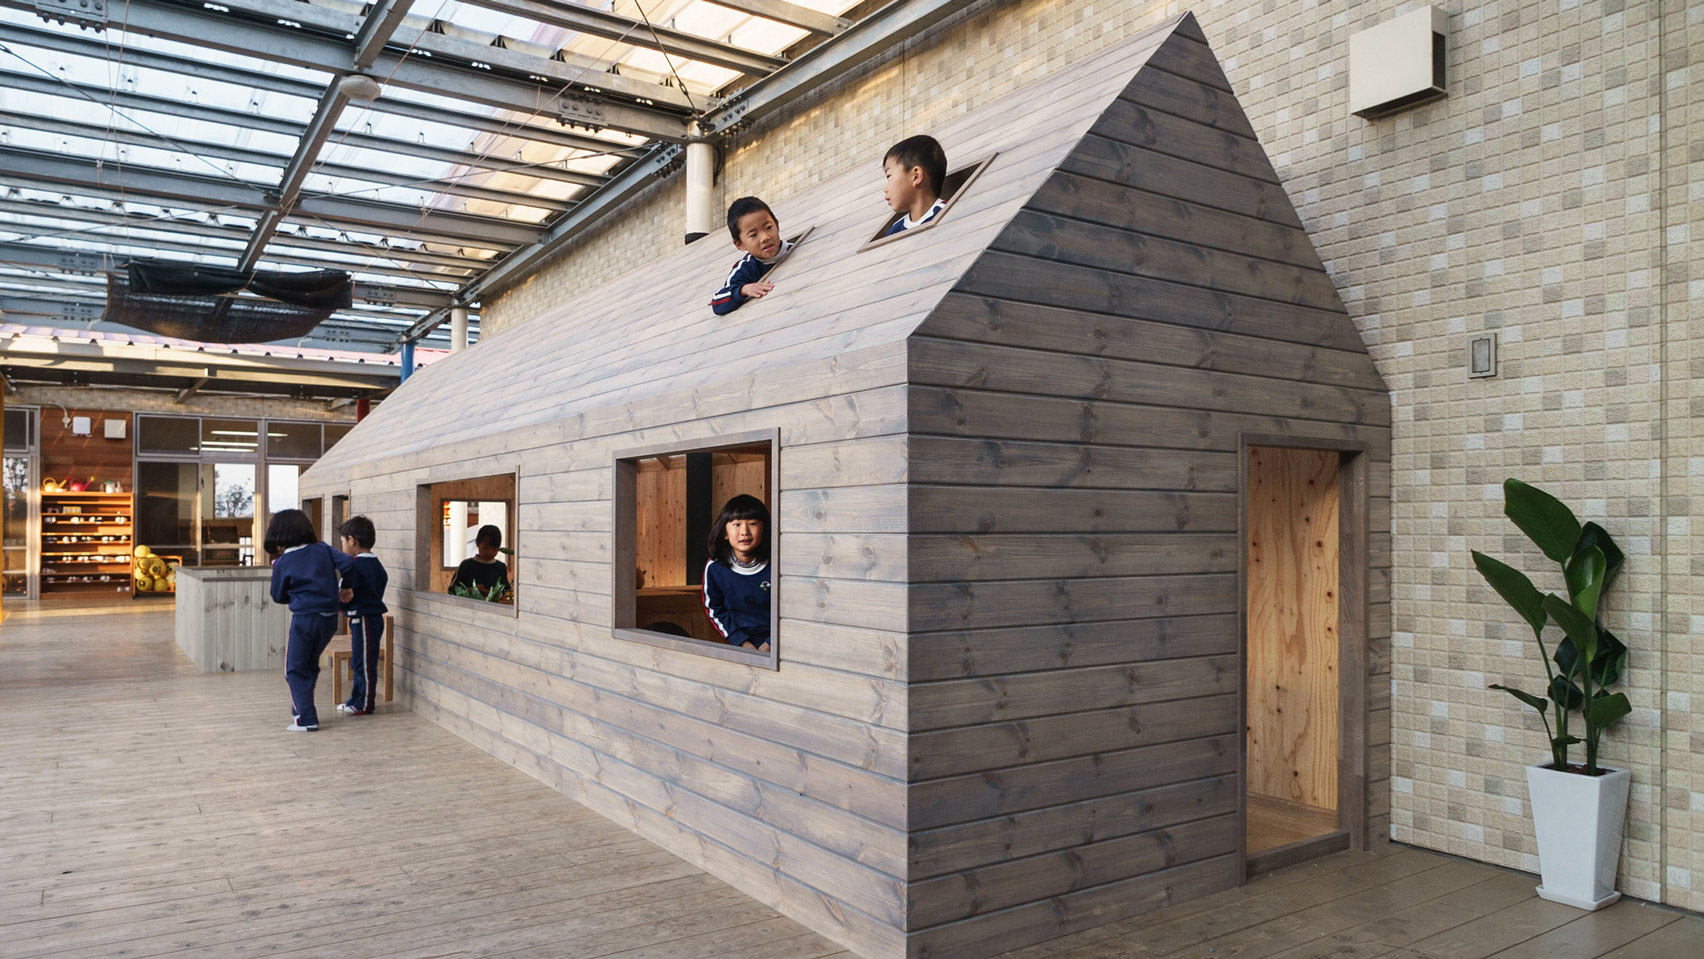 hibinosekkei installs micro house in japanese kindergarten to encourage independent play - Japanese Architecture Small Houses